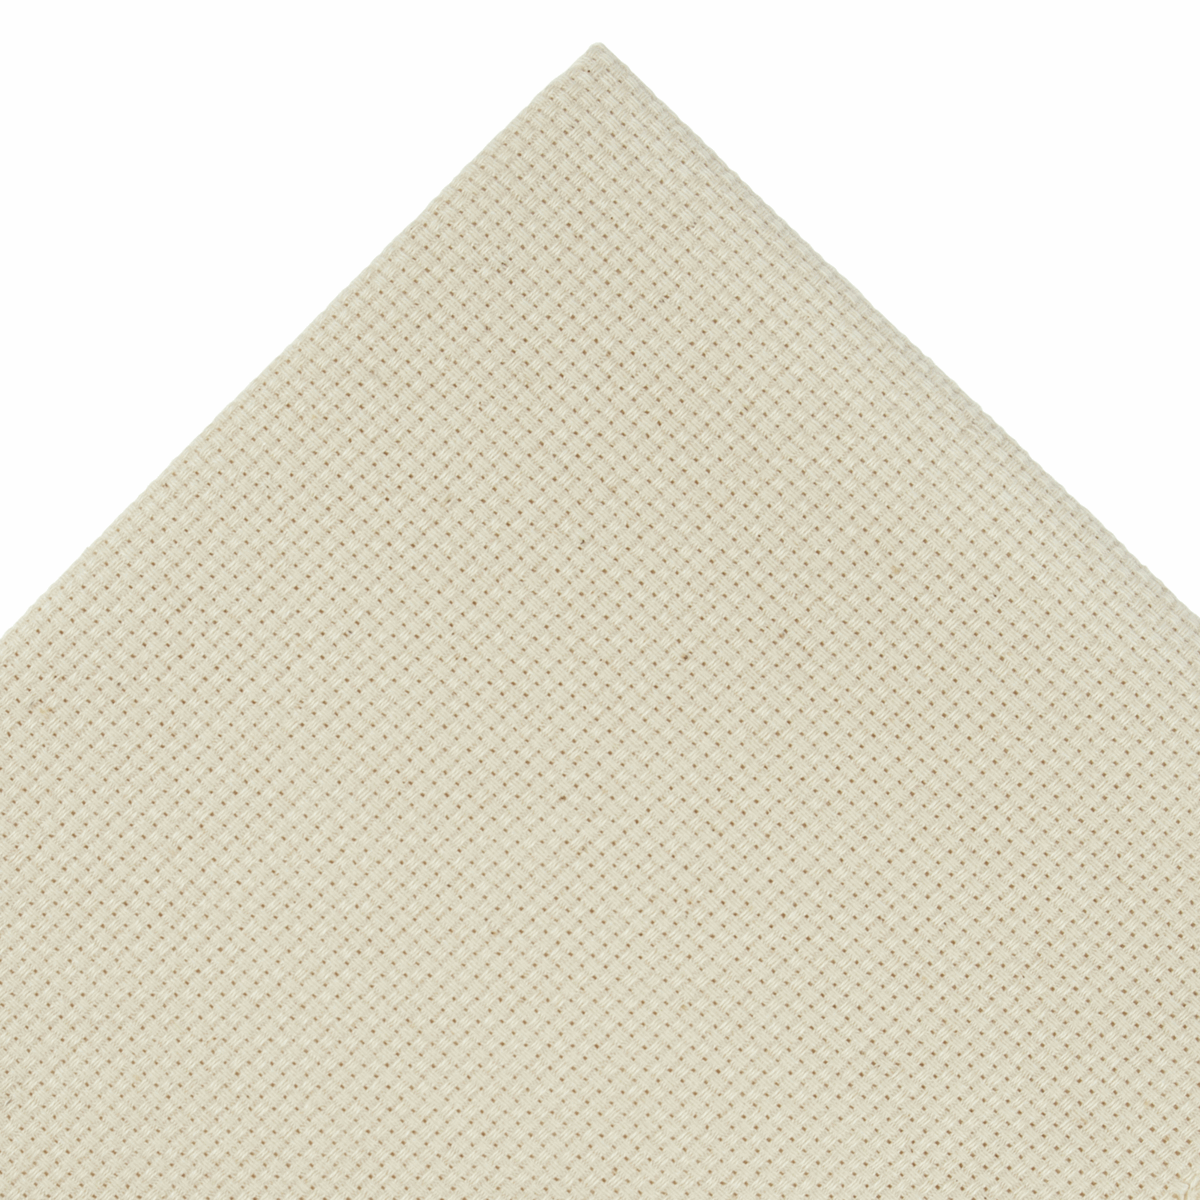 Picture of Punch Needle Fabric: 11 Count: 70 x 80cm: Cream: 1 Piece